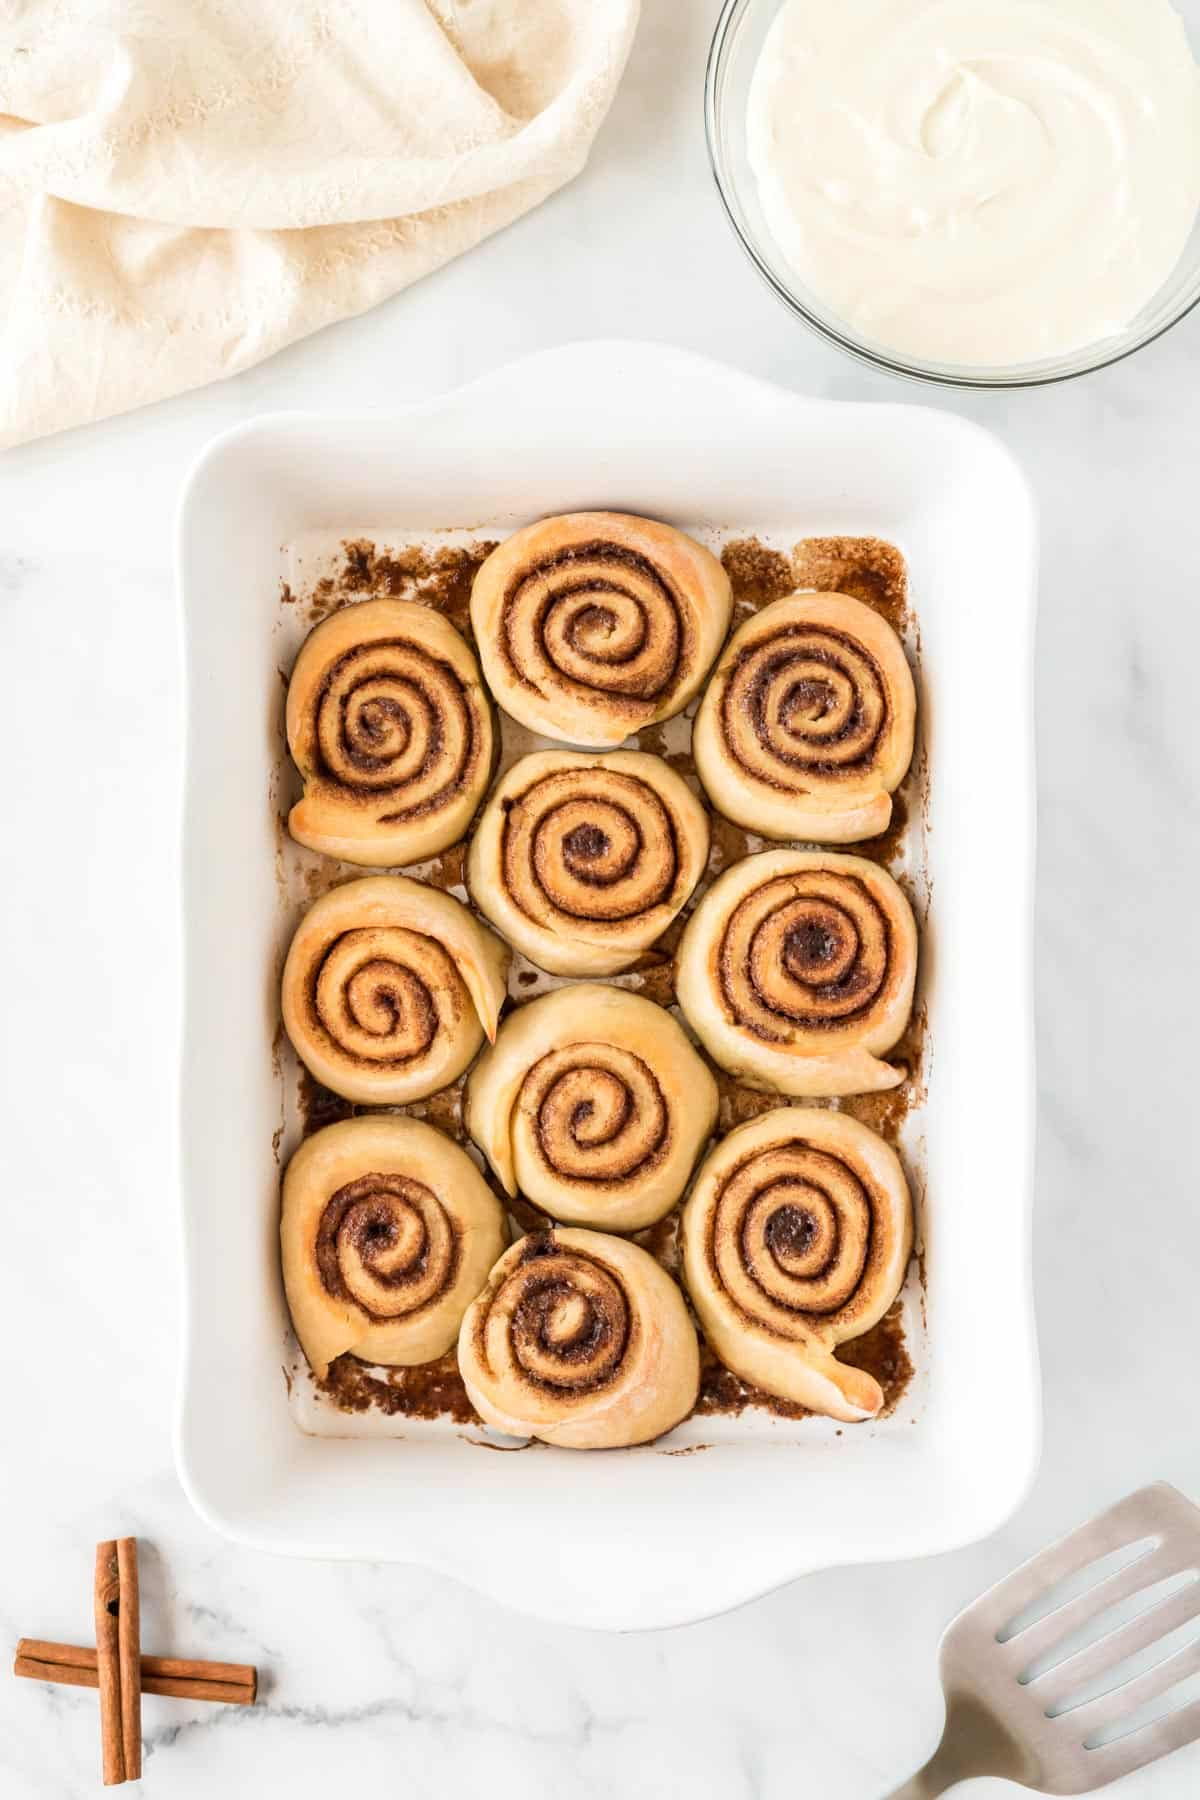 cinnamon rolls in a baking dish after baking